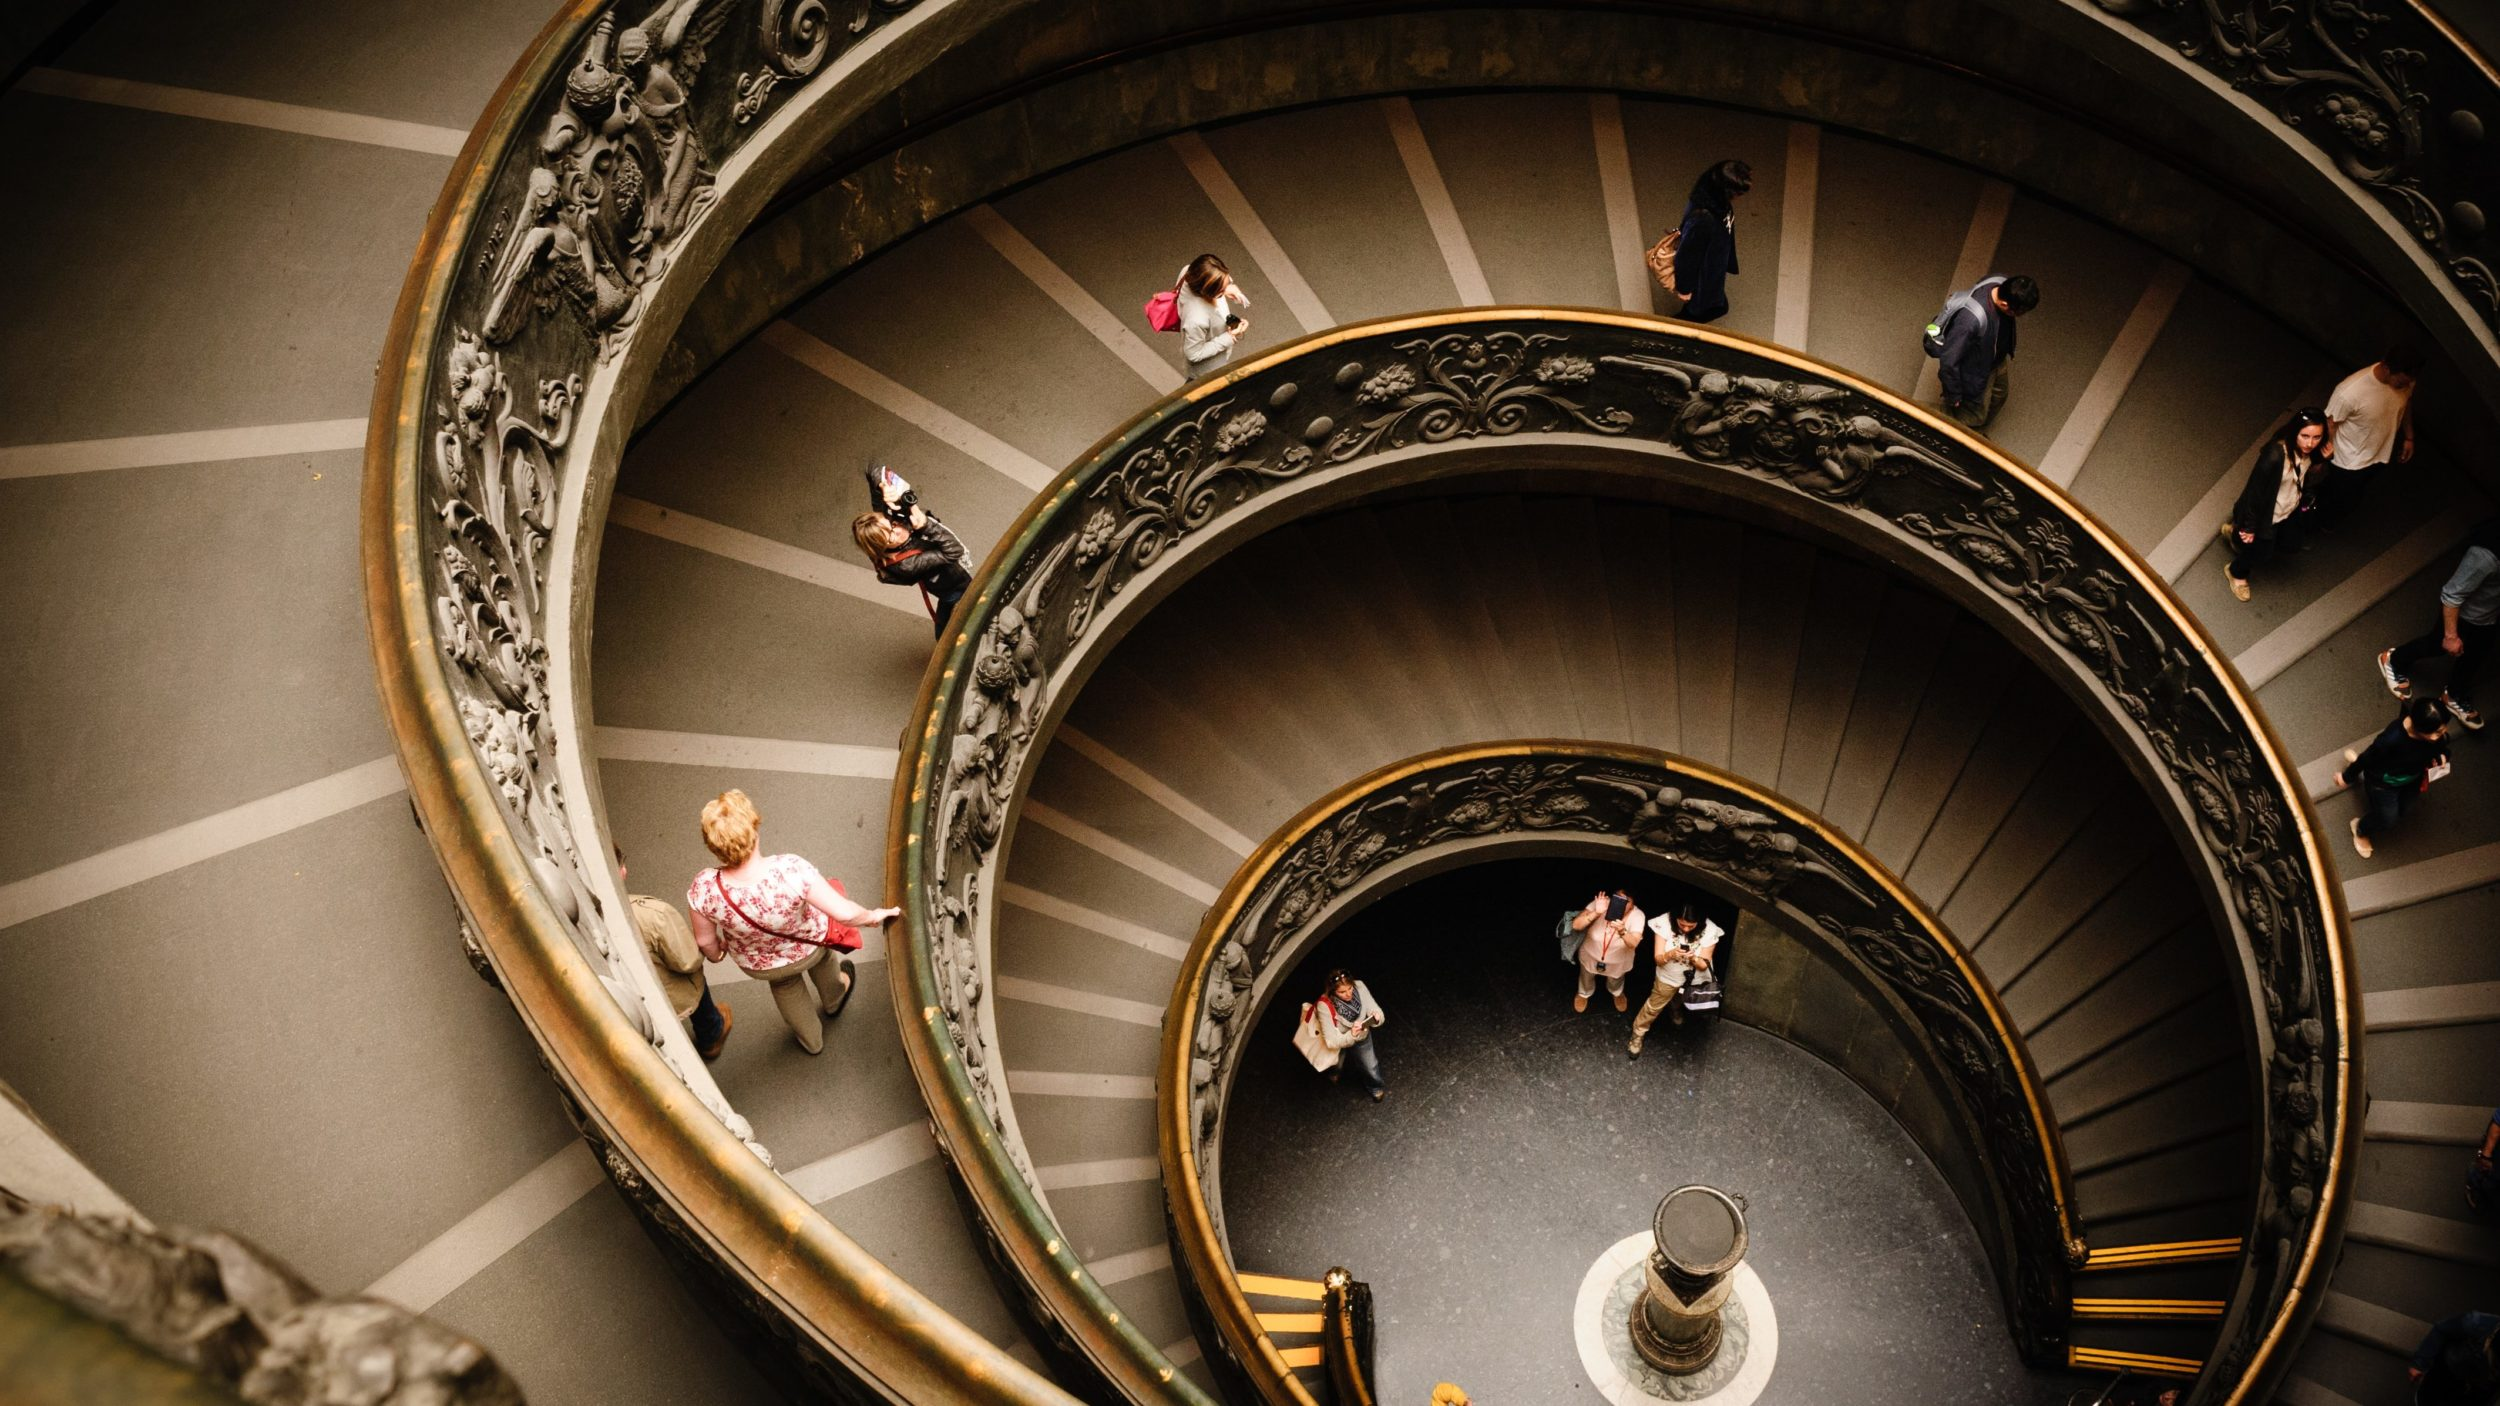 A spiral staircase seen from above